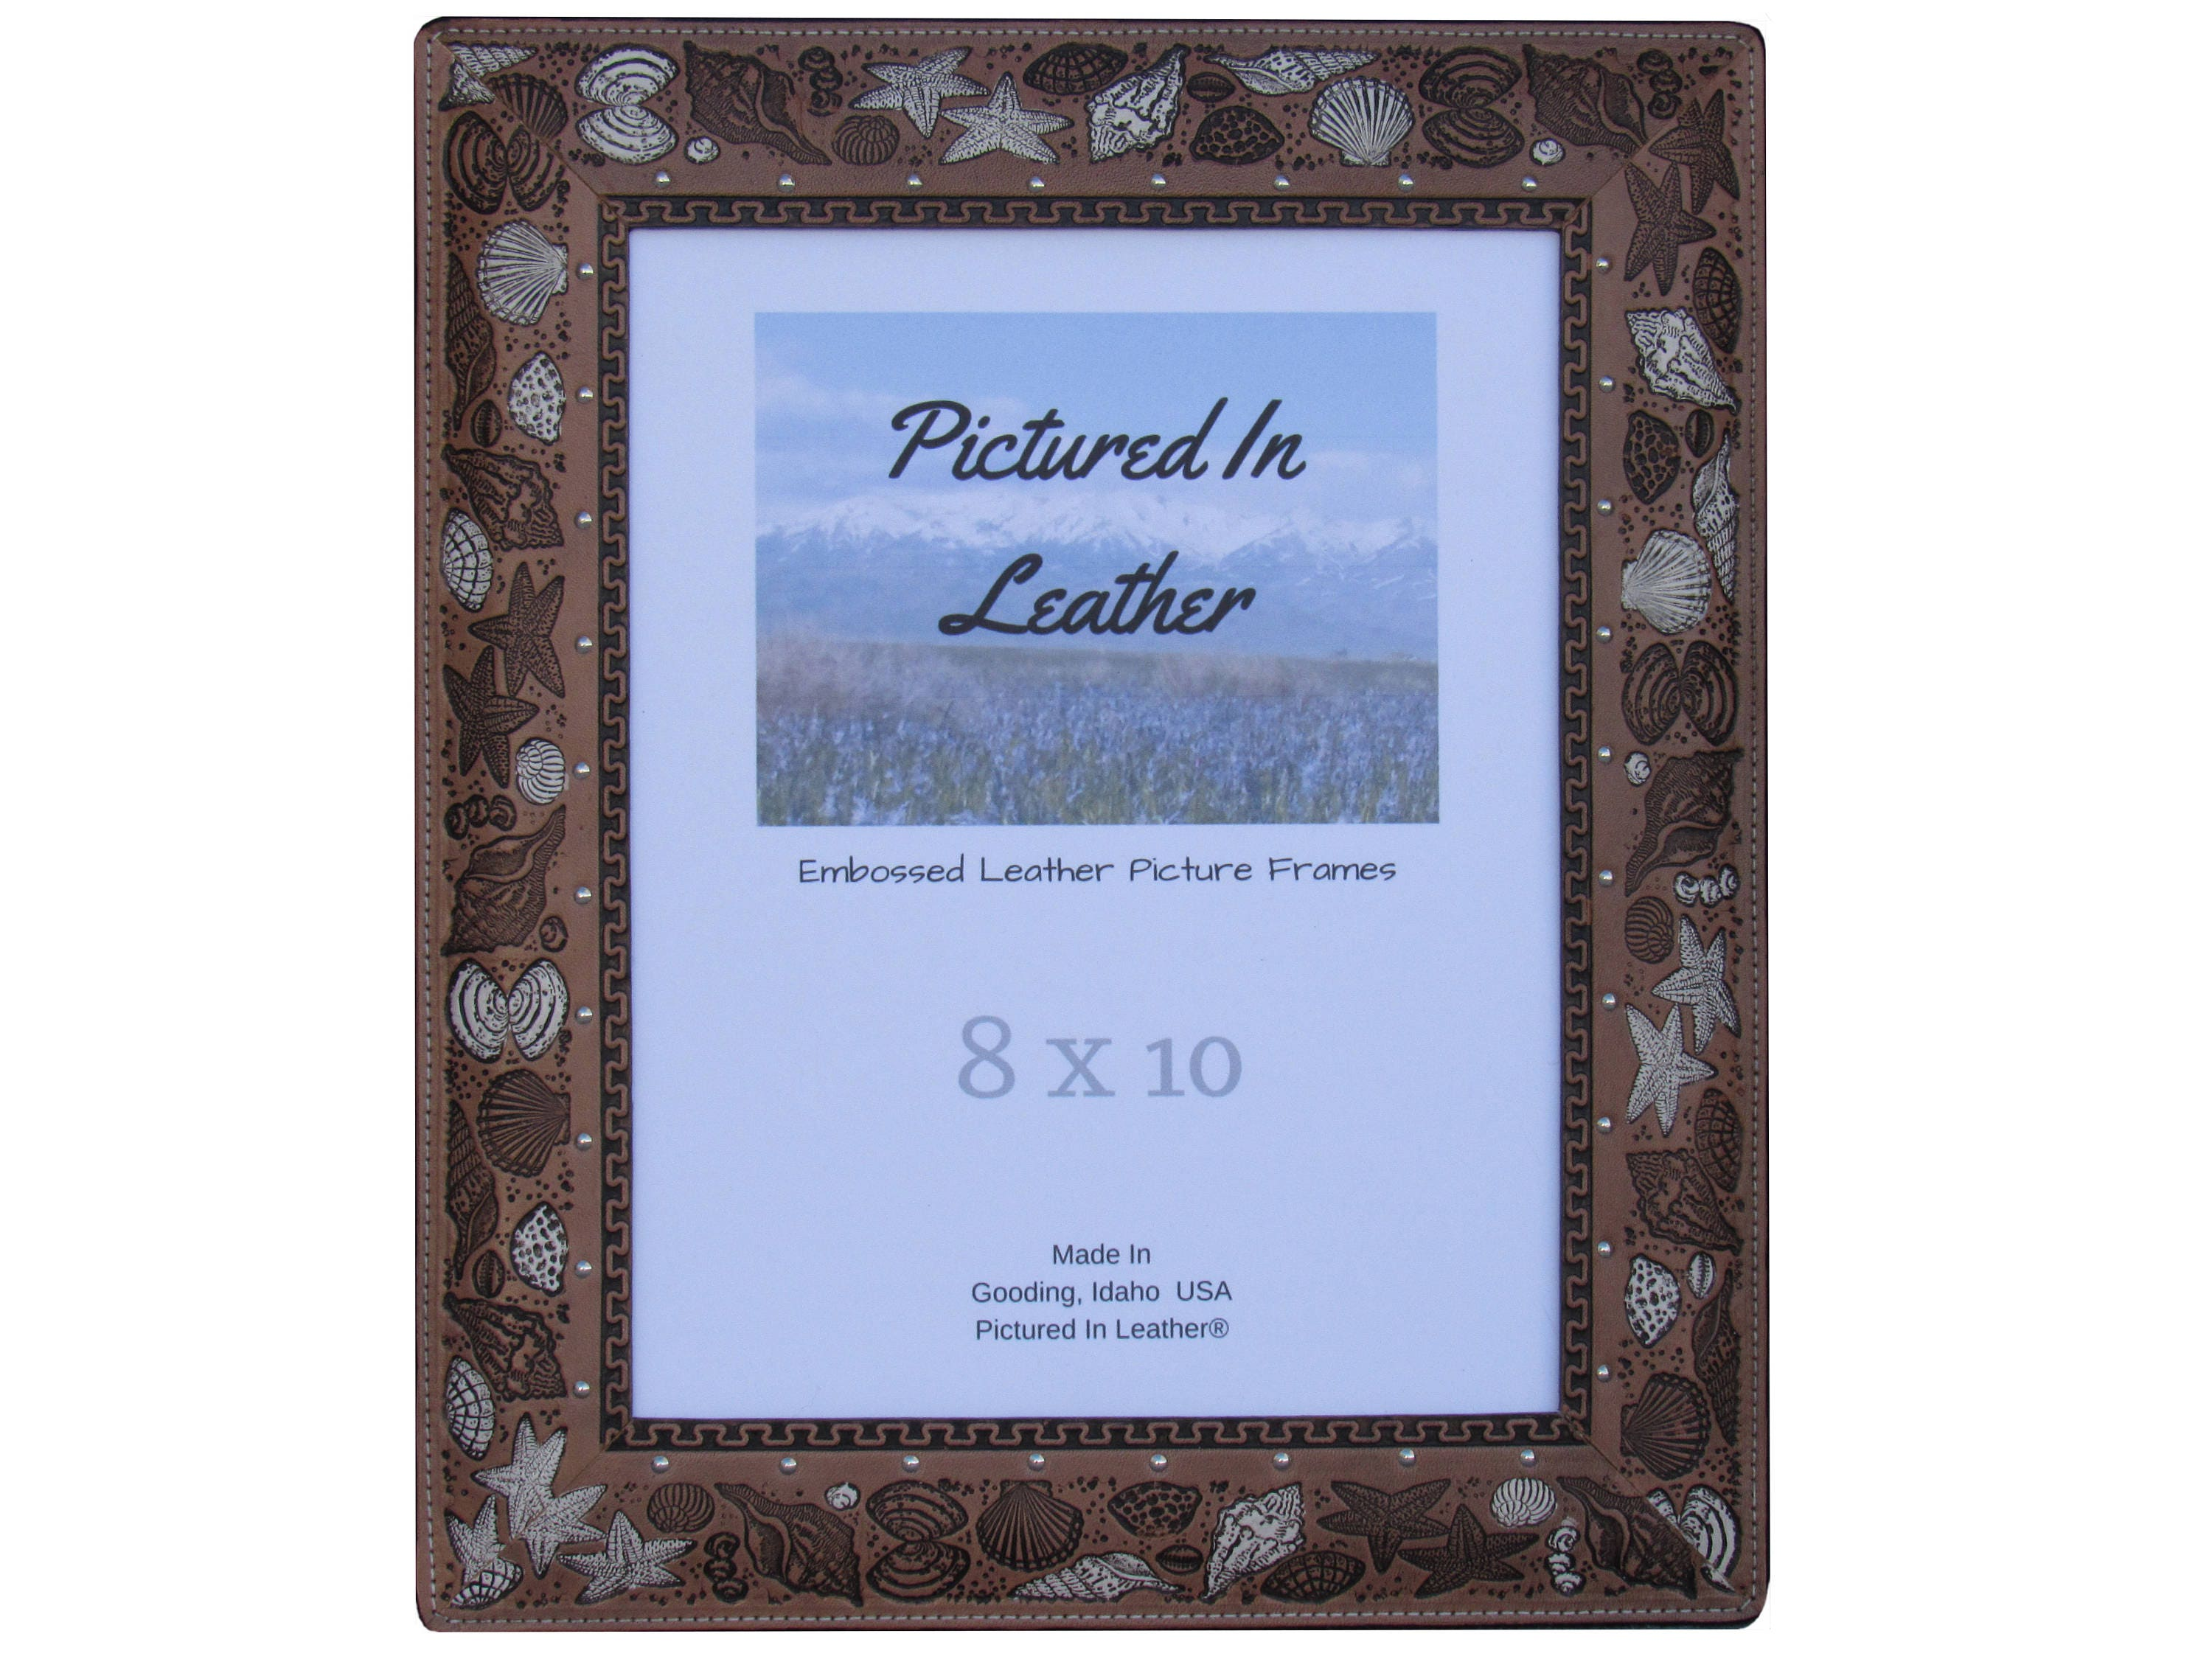 8x10 leather photo frame beach picture frame seashell picture 8x10 leather photo frame beach picture frame seashell picture frame nautical picture frame shell picture frame leather seashell decor jeuxipadfo Images